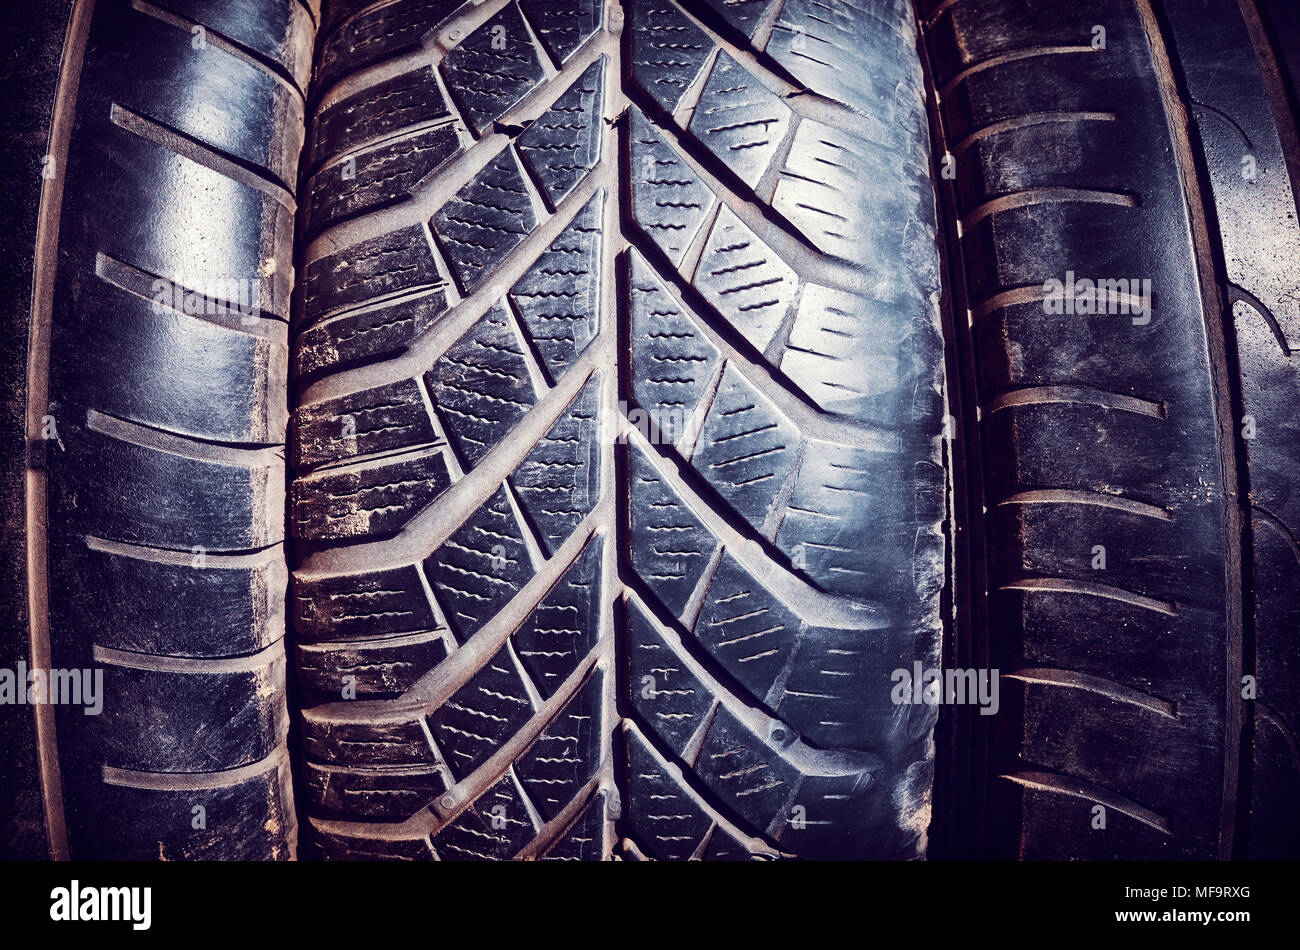 Vintage toned close up picture of used car tires. - Stock Image